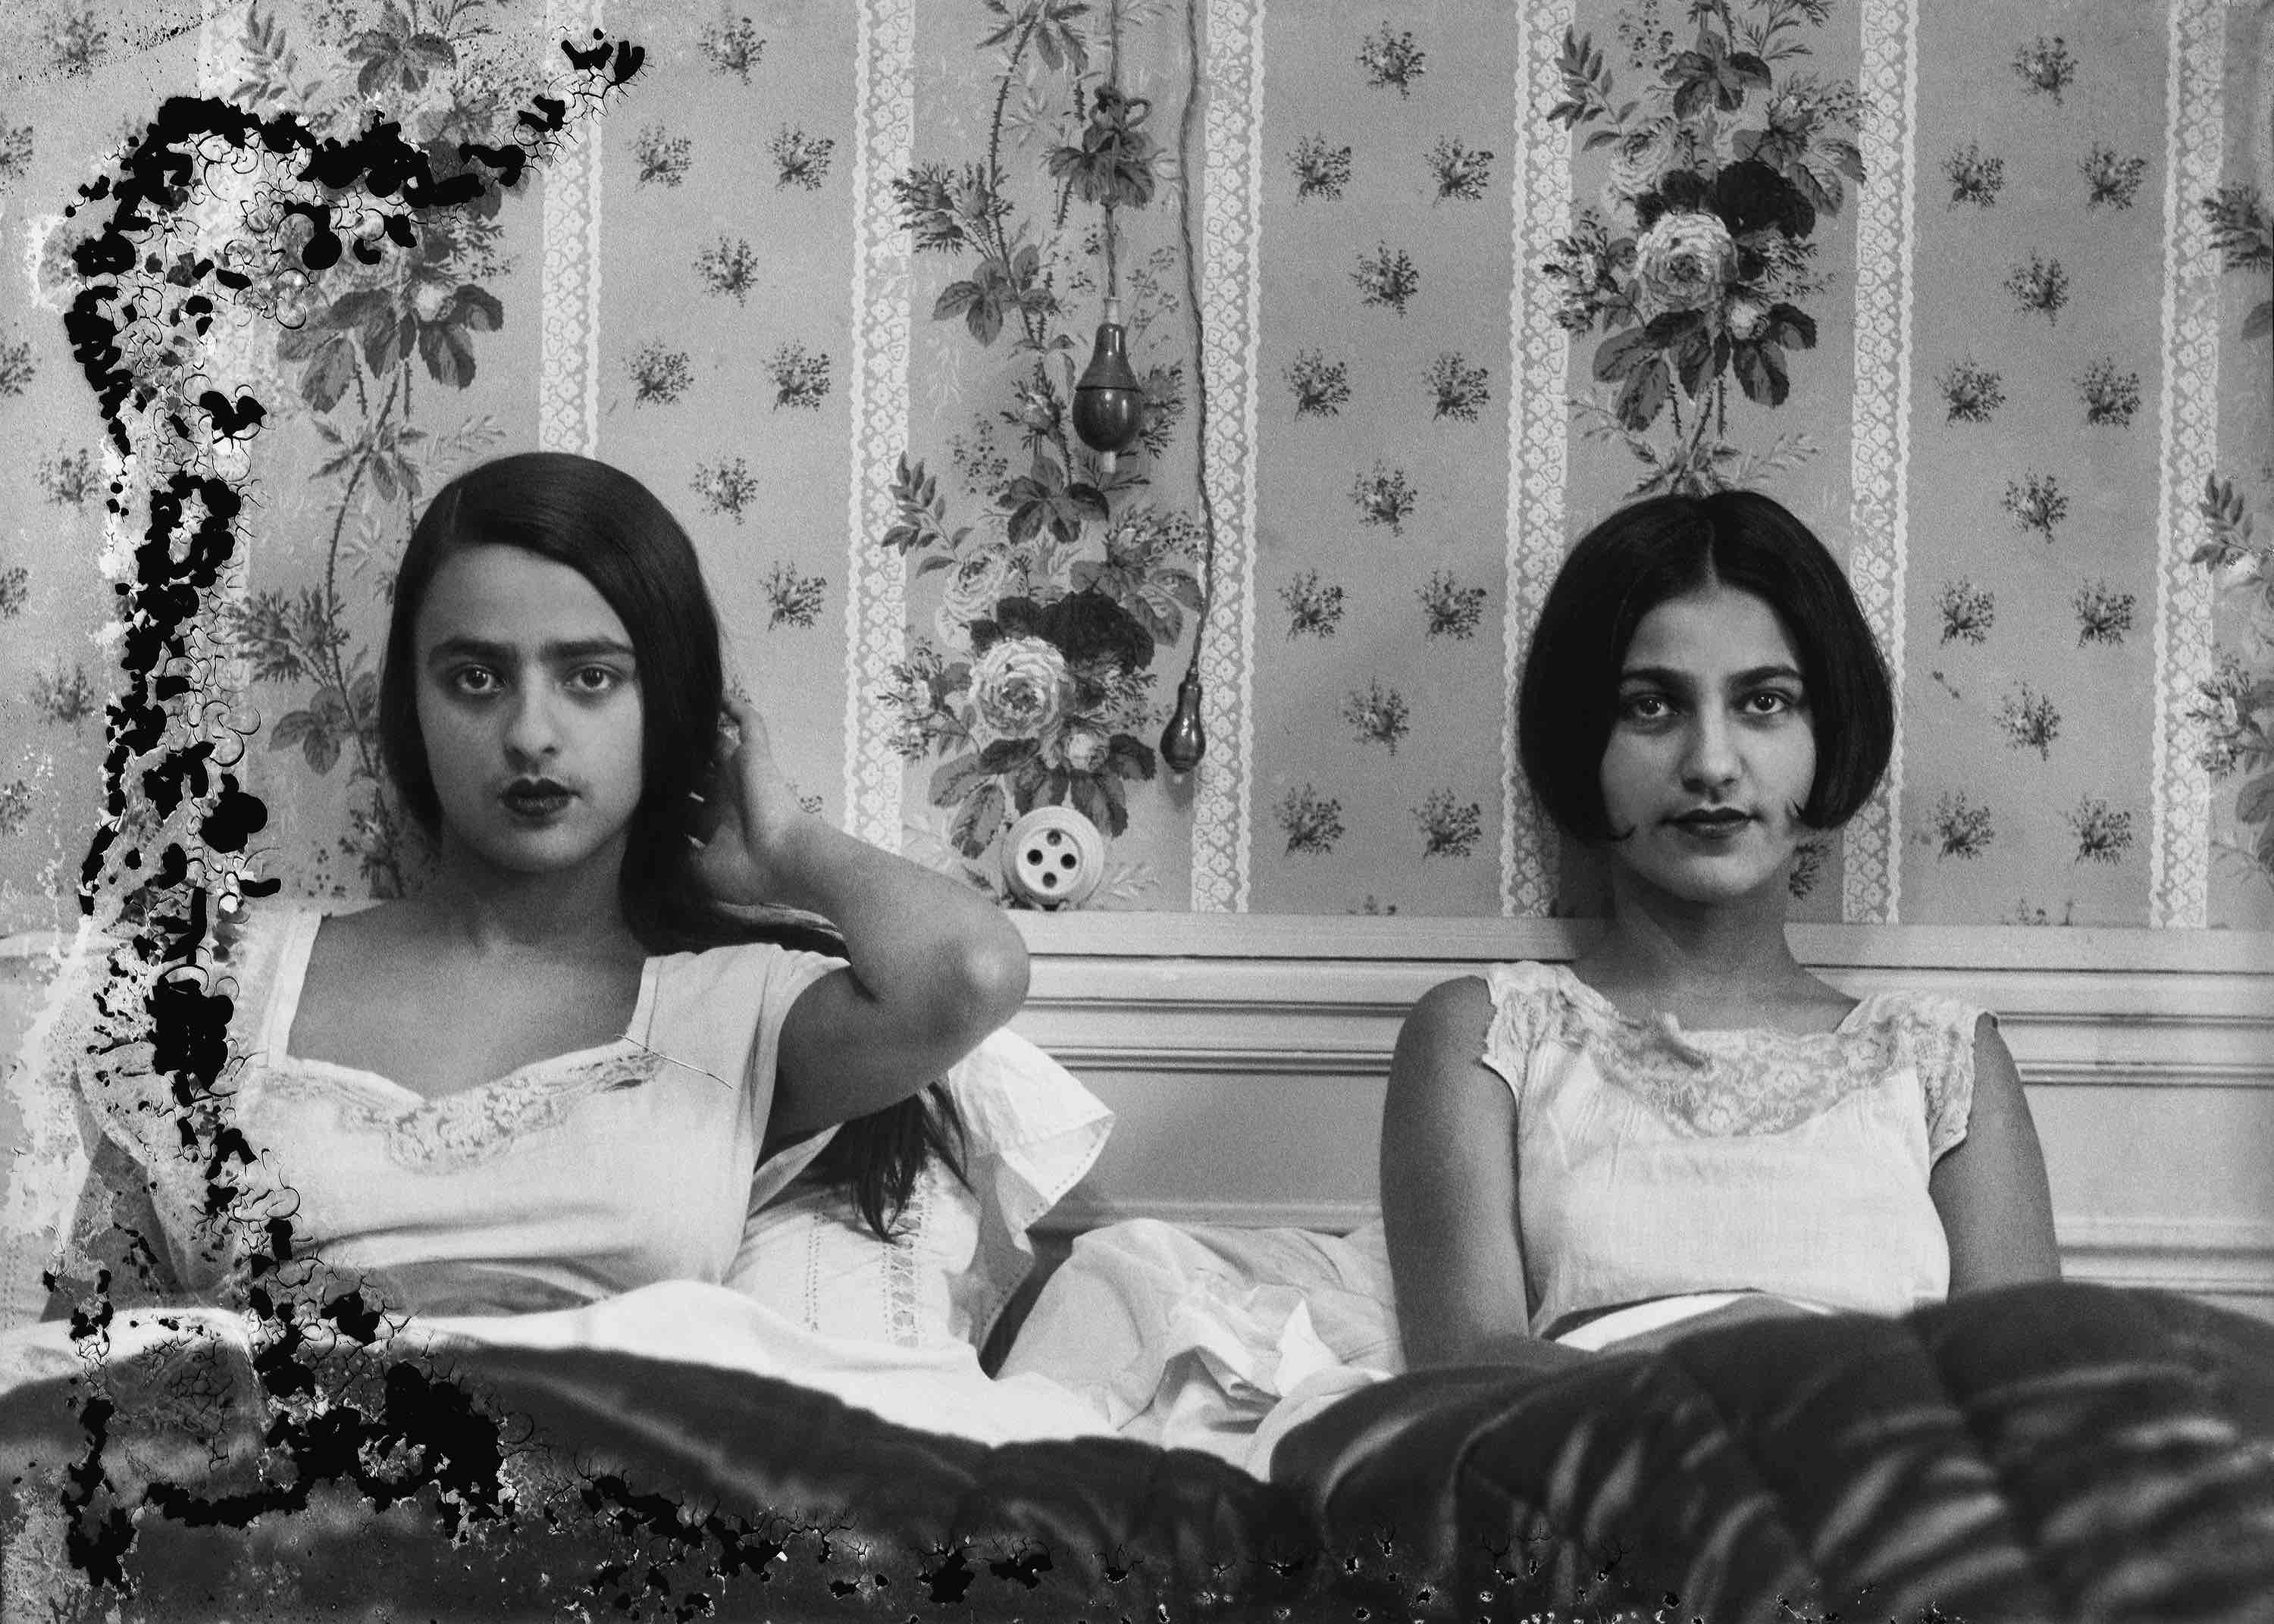 Umrao Singh Sher-Gil Sisters in bed, c1932. Courtesy of PHOTOINK